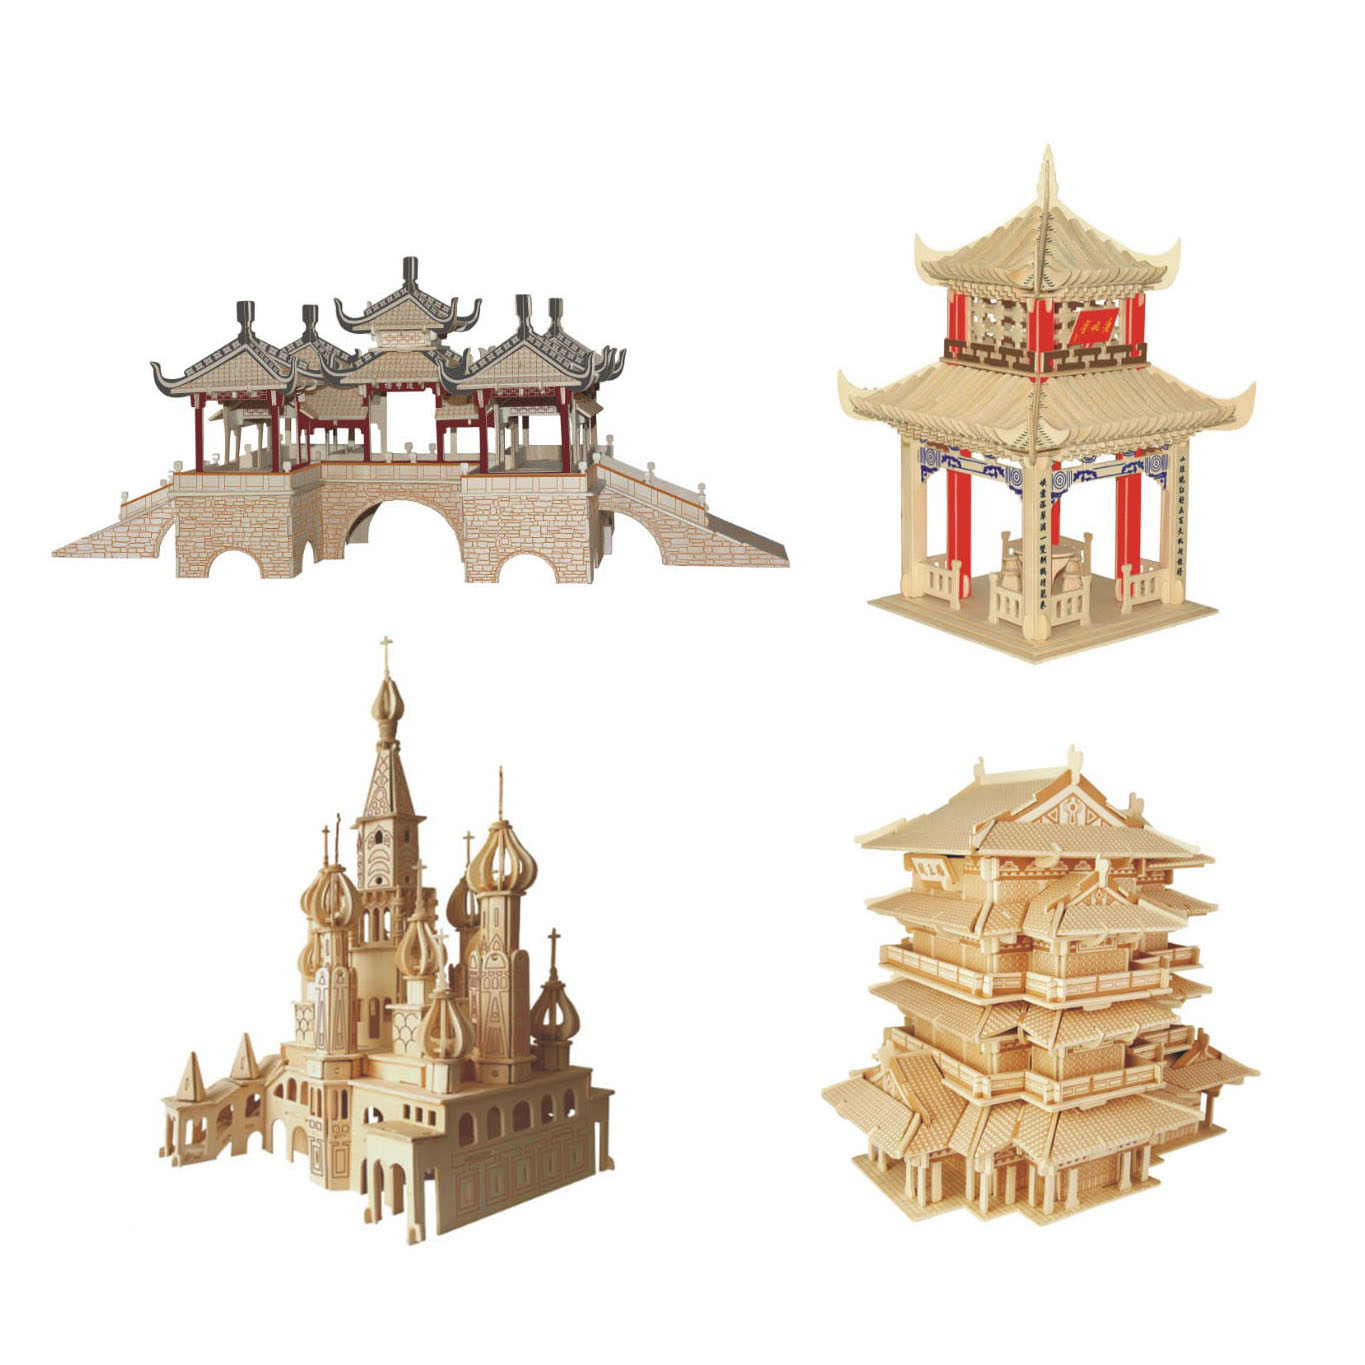 Chanycore Baby Learning Educational Wooden Toys 3D Puzzle Building House Chinese Bridge Pavilion Church Kids Gifts 4315 kids educational diy 3d puzzle toys wooden assembly ancient chinese shaolin temple